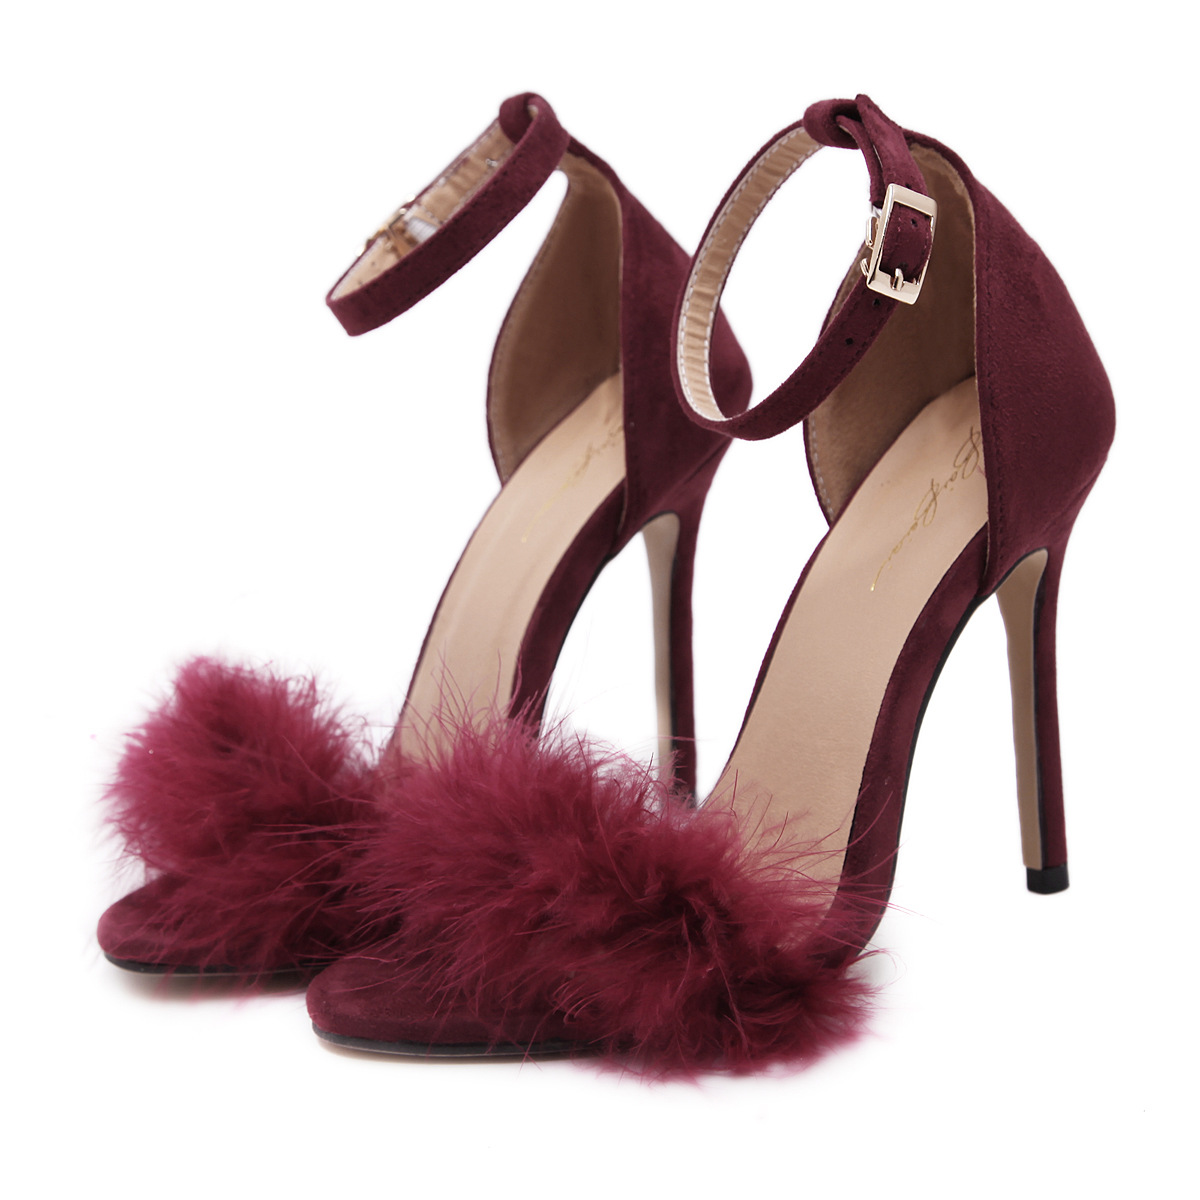 ФОТО  name with the same section of the high heel shoes with a pair of sandals buckle shoes, women's shoes, 42 yards shoes